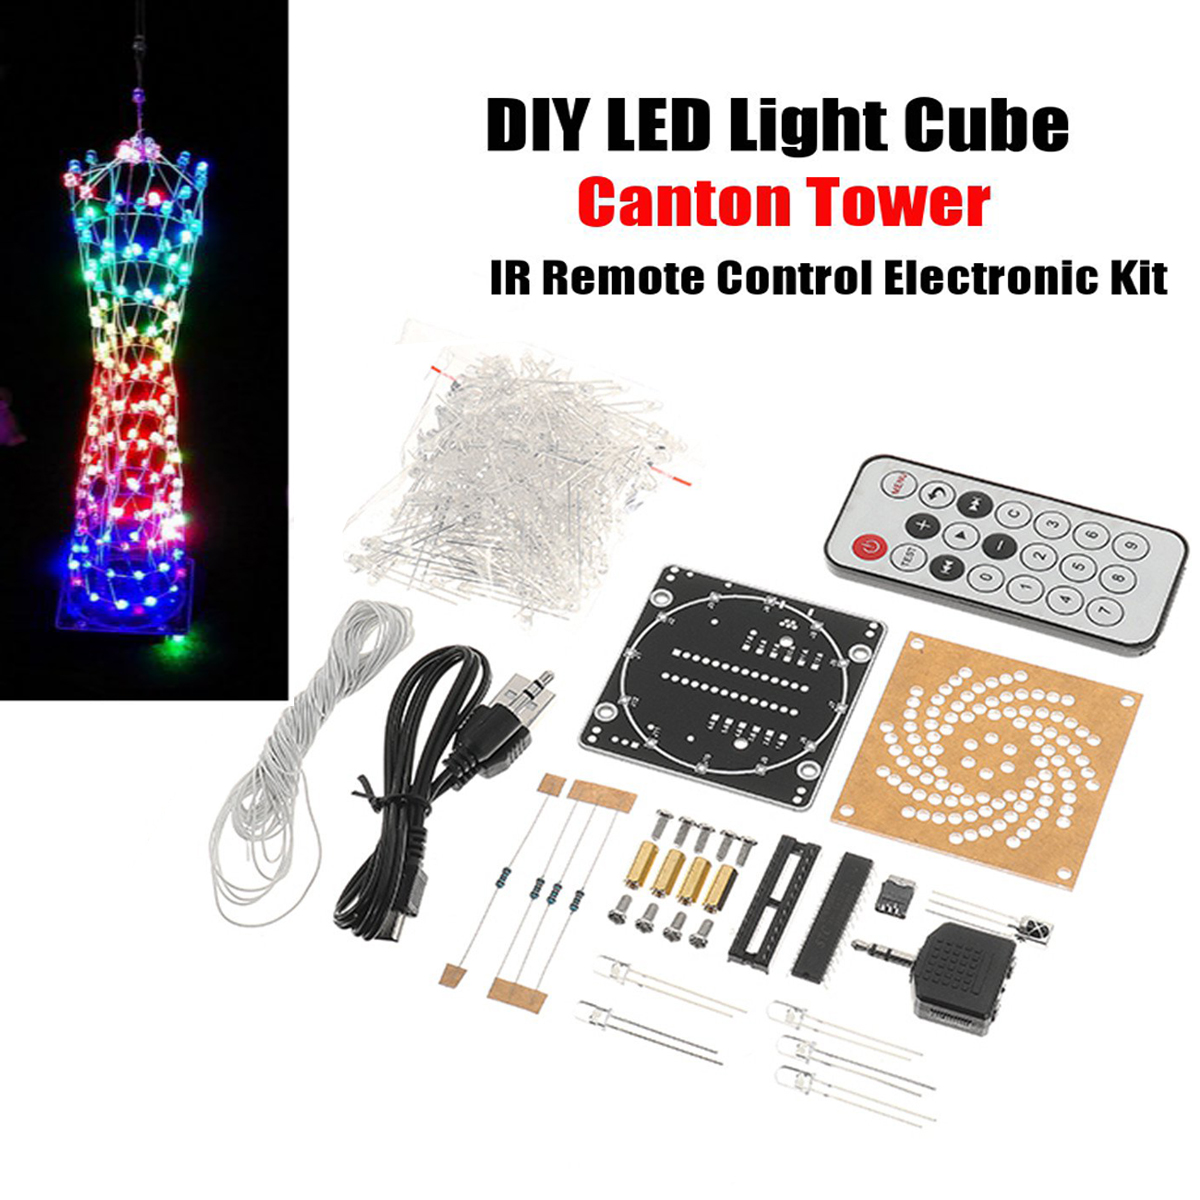 DIY Little Colorful LED Light Cube Canton Tower Suite IR Remote Control Electronic Kit Module(China)